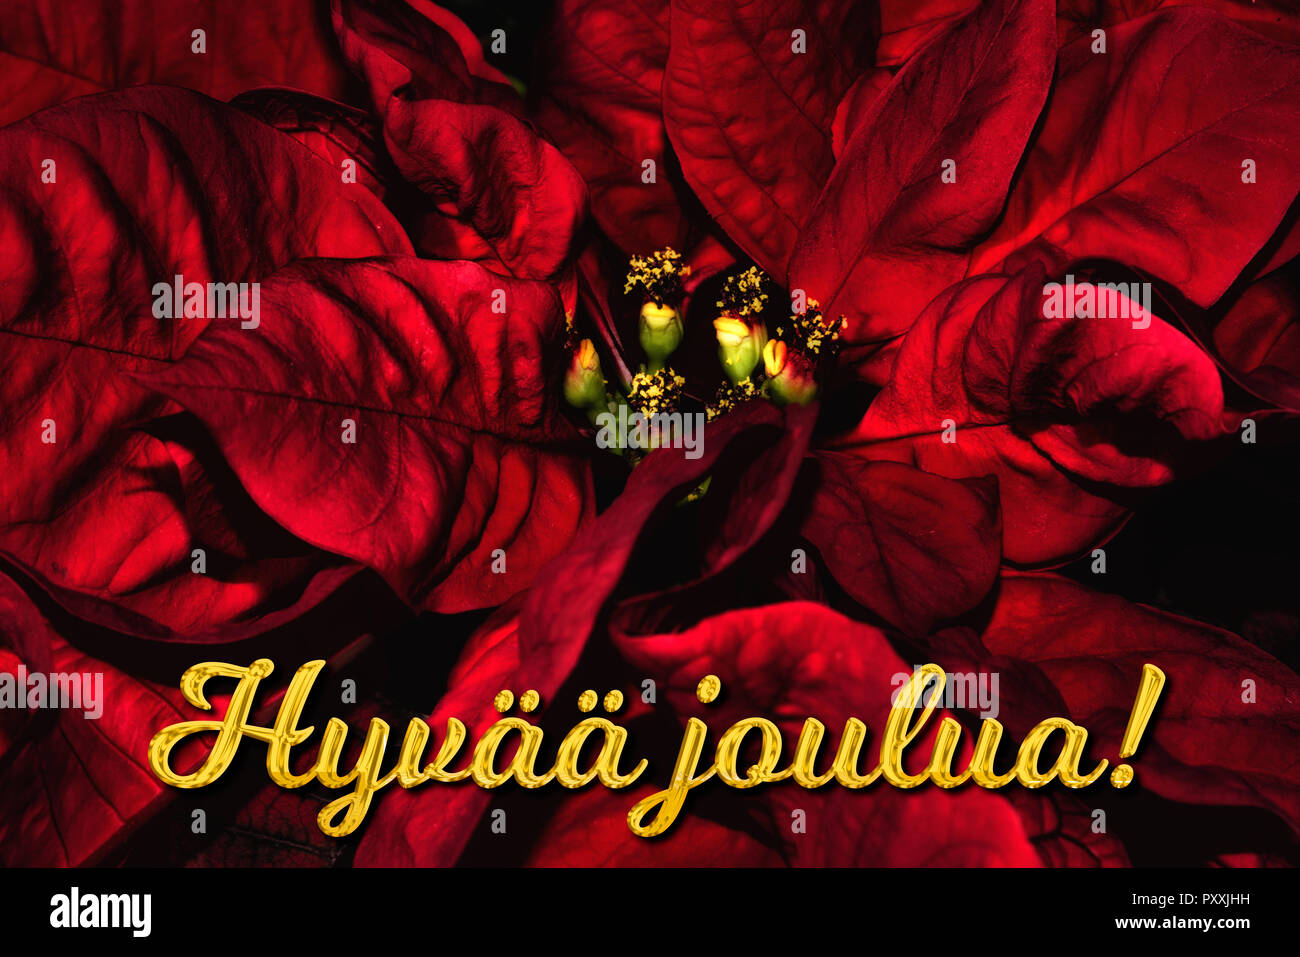 The Finnish Text Hyv Joulua Means Merry Christmas Which Is In